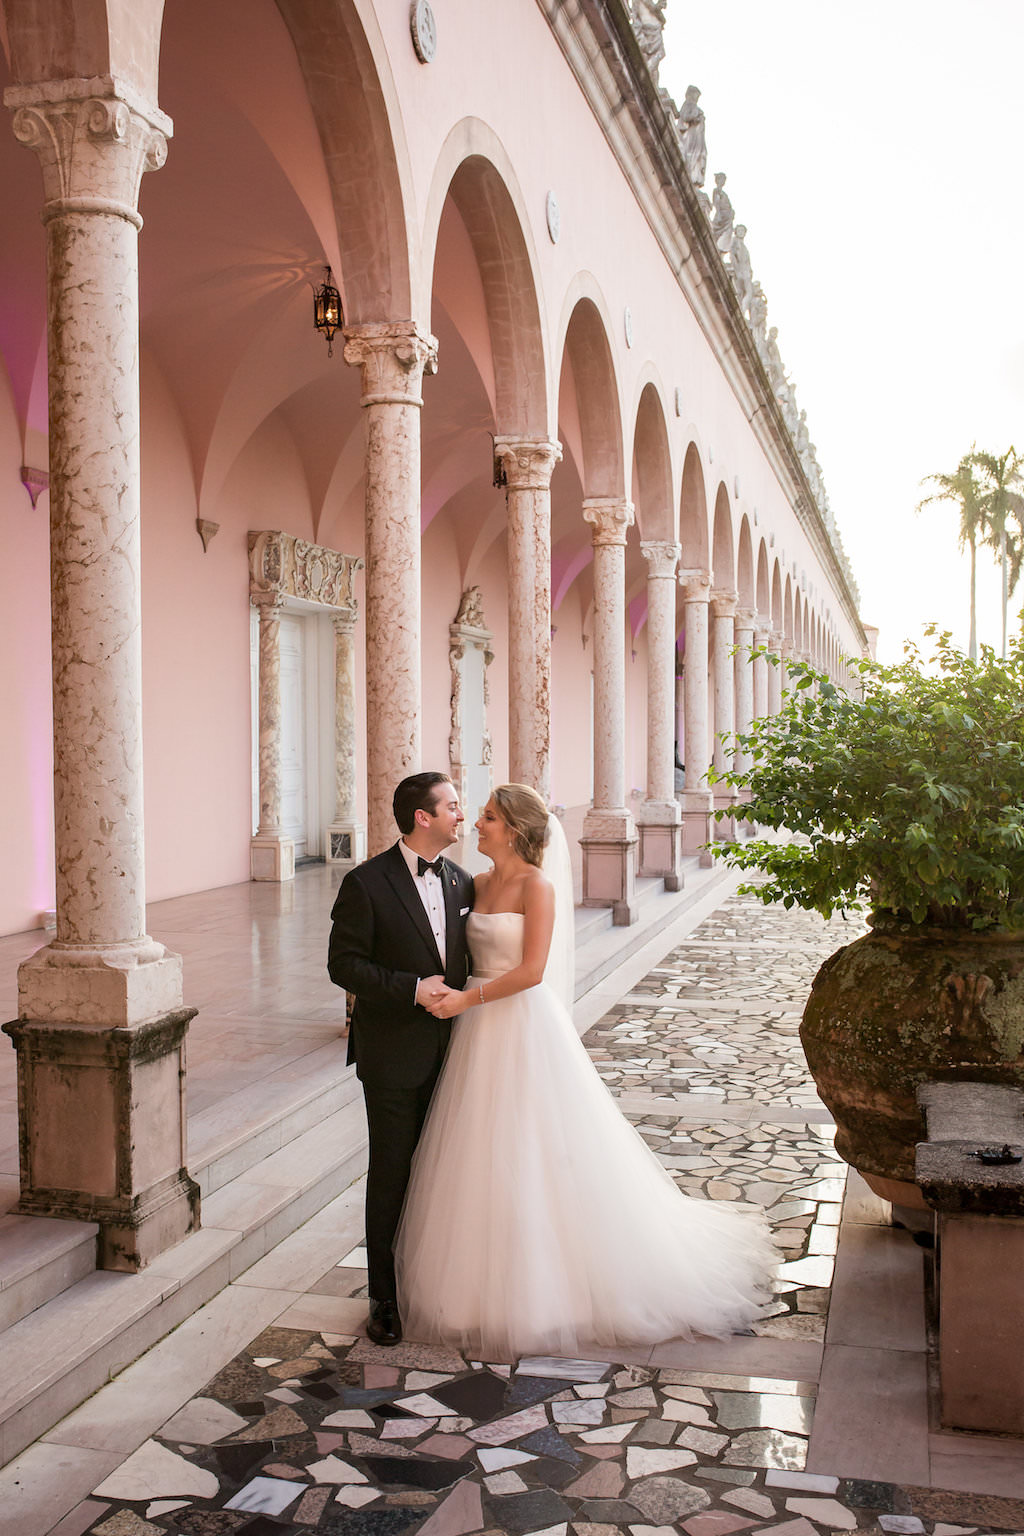 Bride and Groom Wedding Ceremony Portrait | Sarasota Wedding Photographer Cat Pennenga Photography | Planner NK Productions | Historic, Iconic Venue Ringling Museum